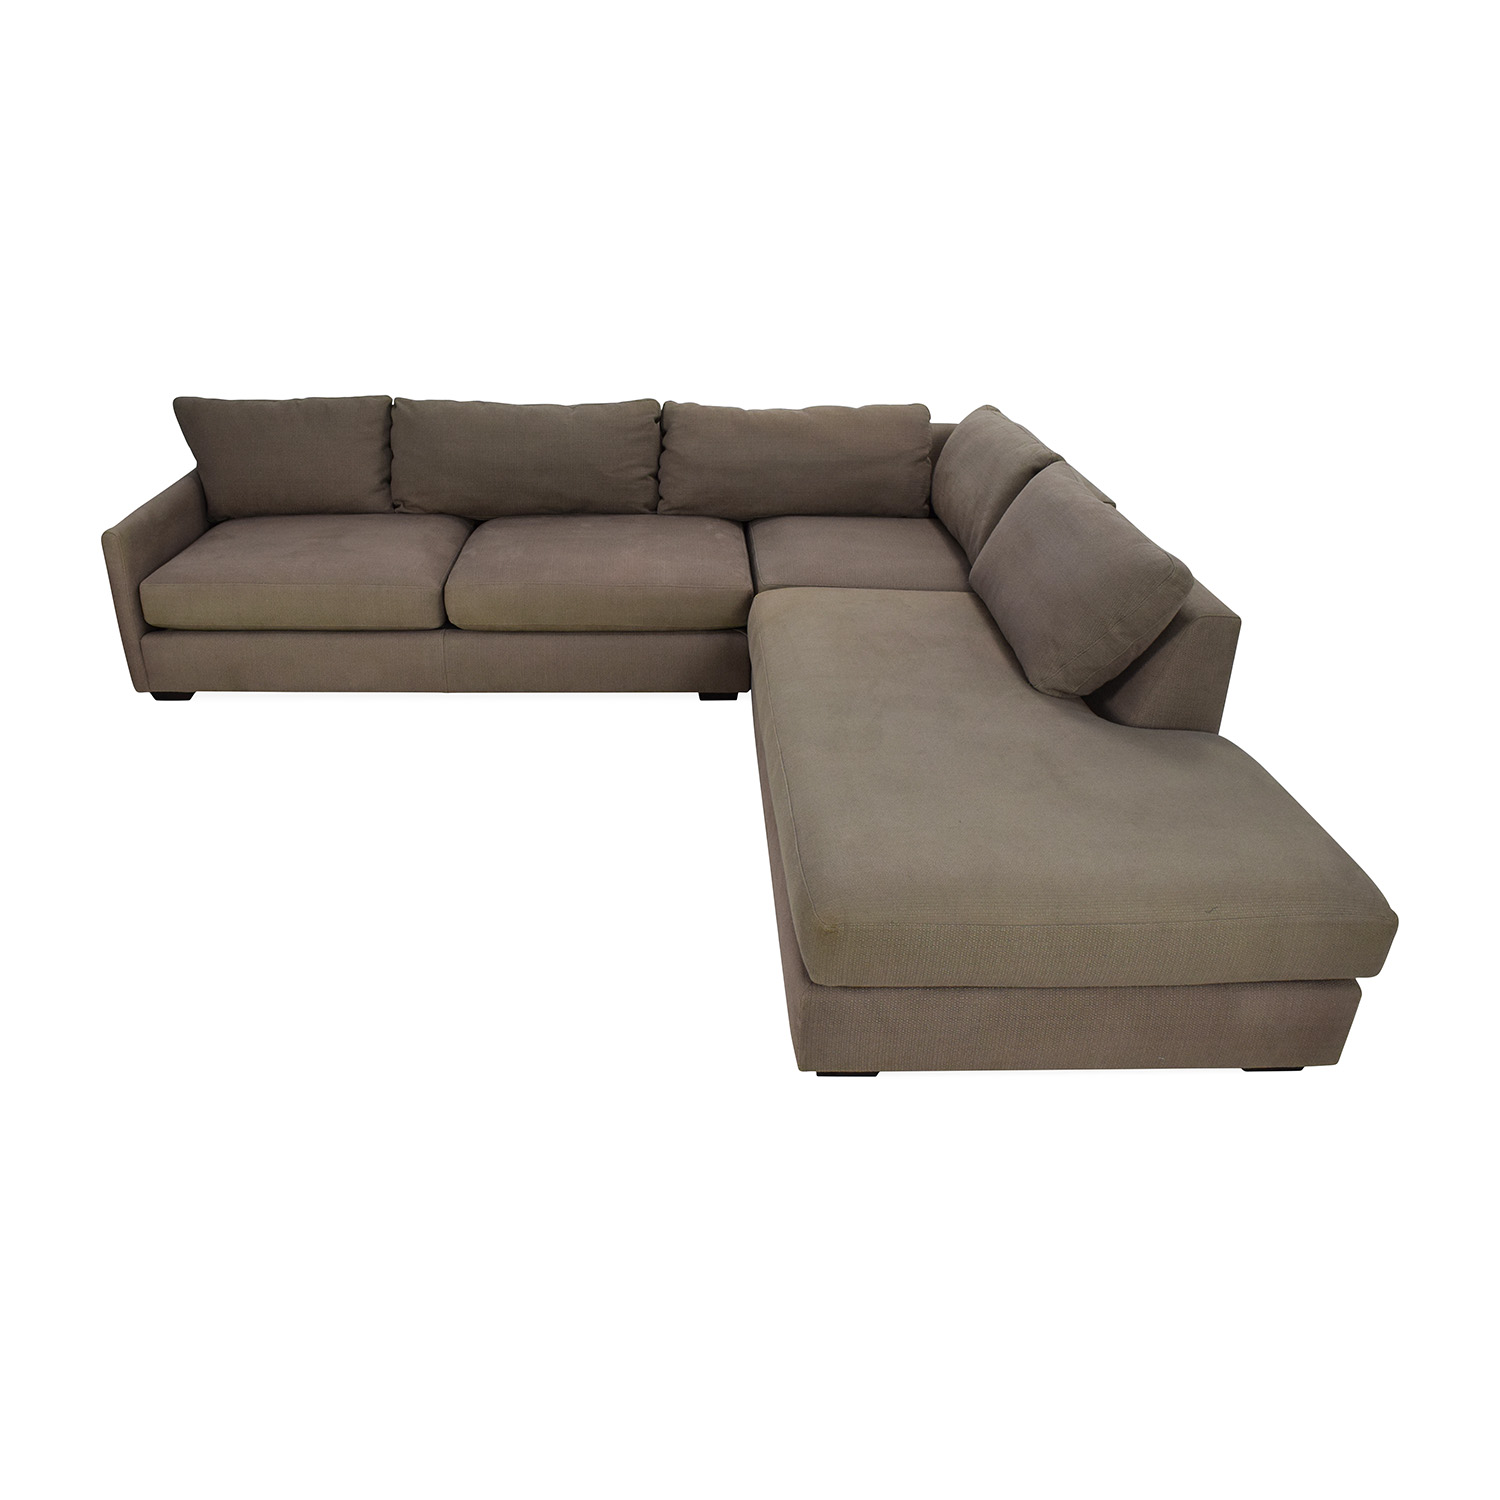 crate and barrel lounge sofa review fixing a frame furniture sectional